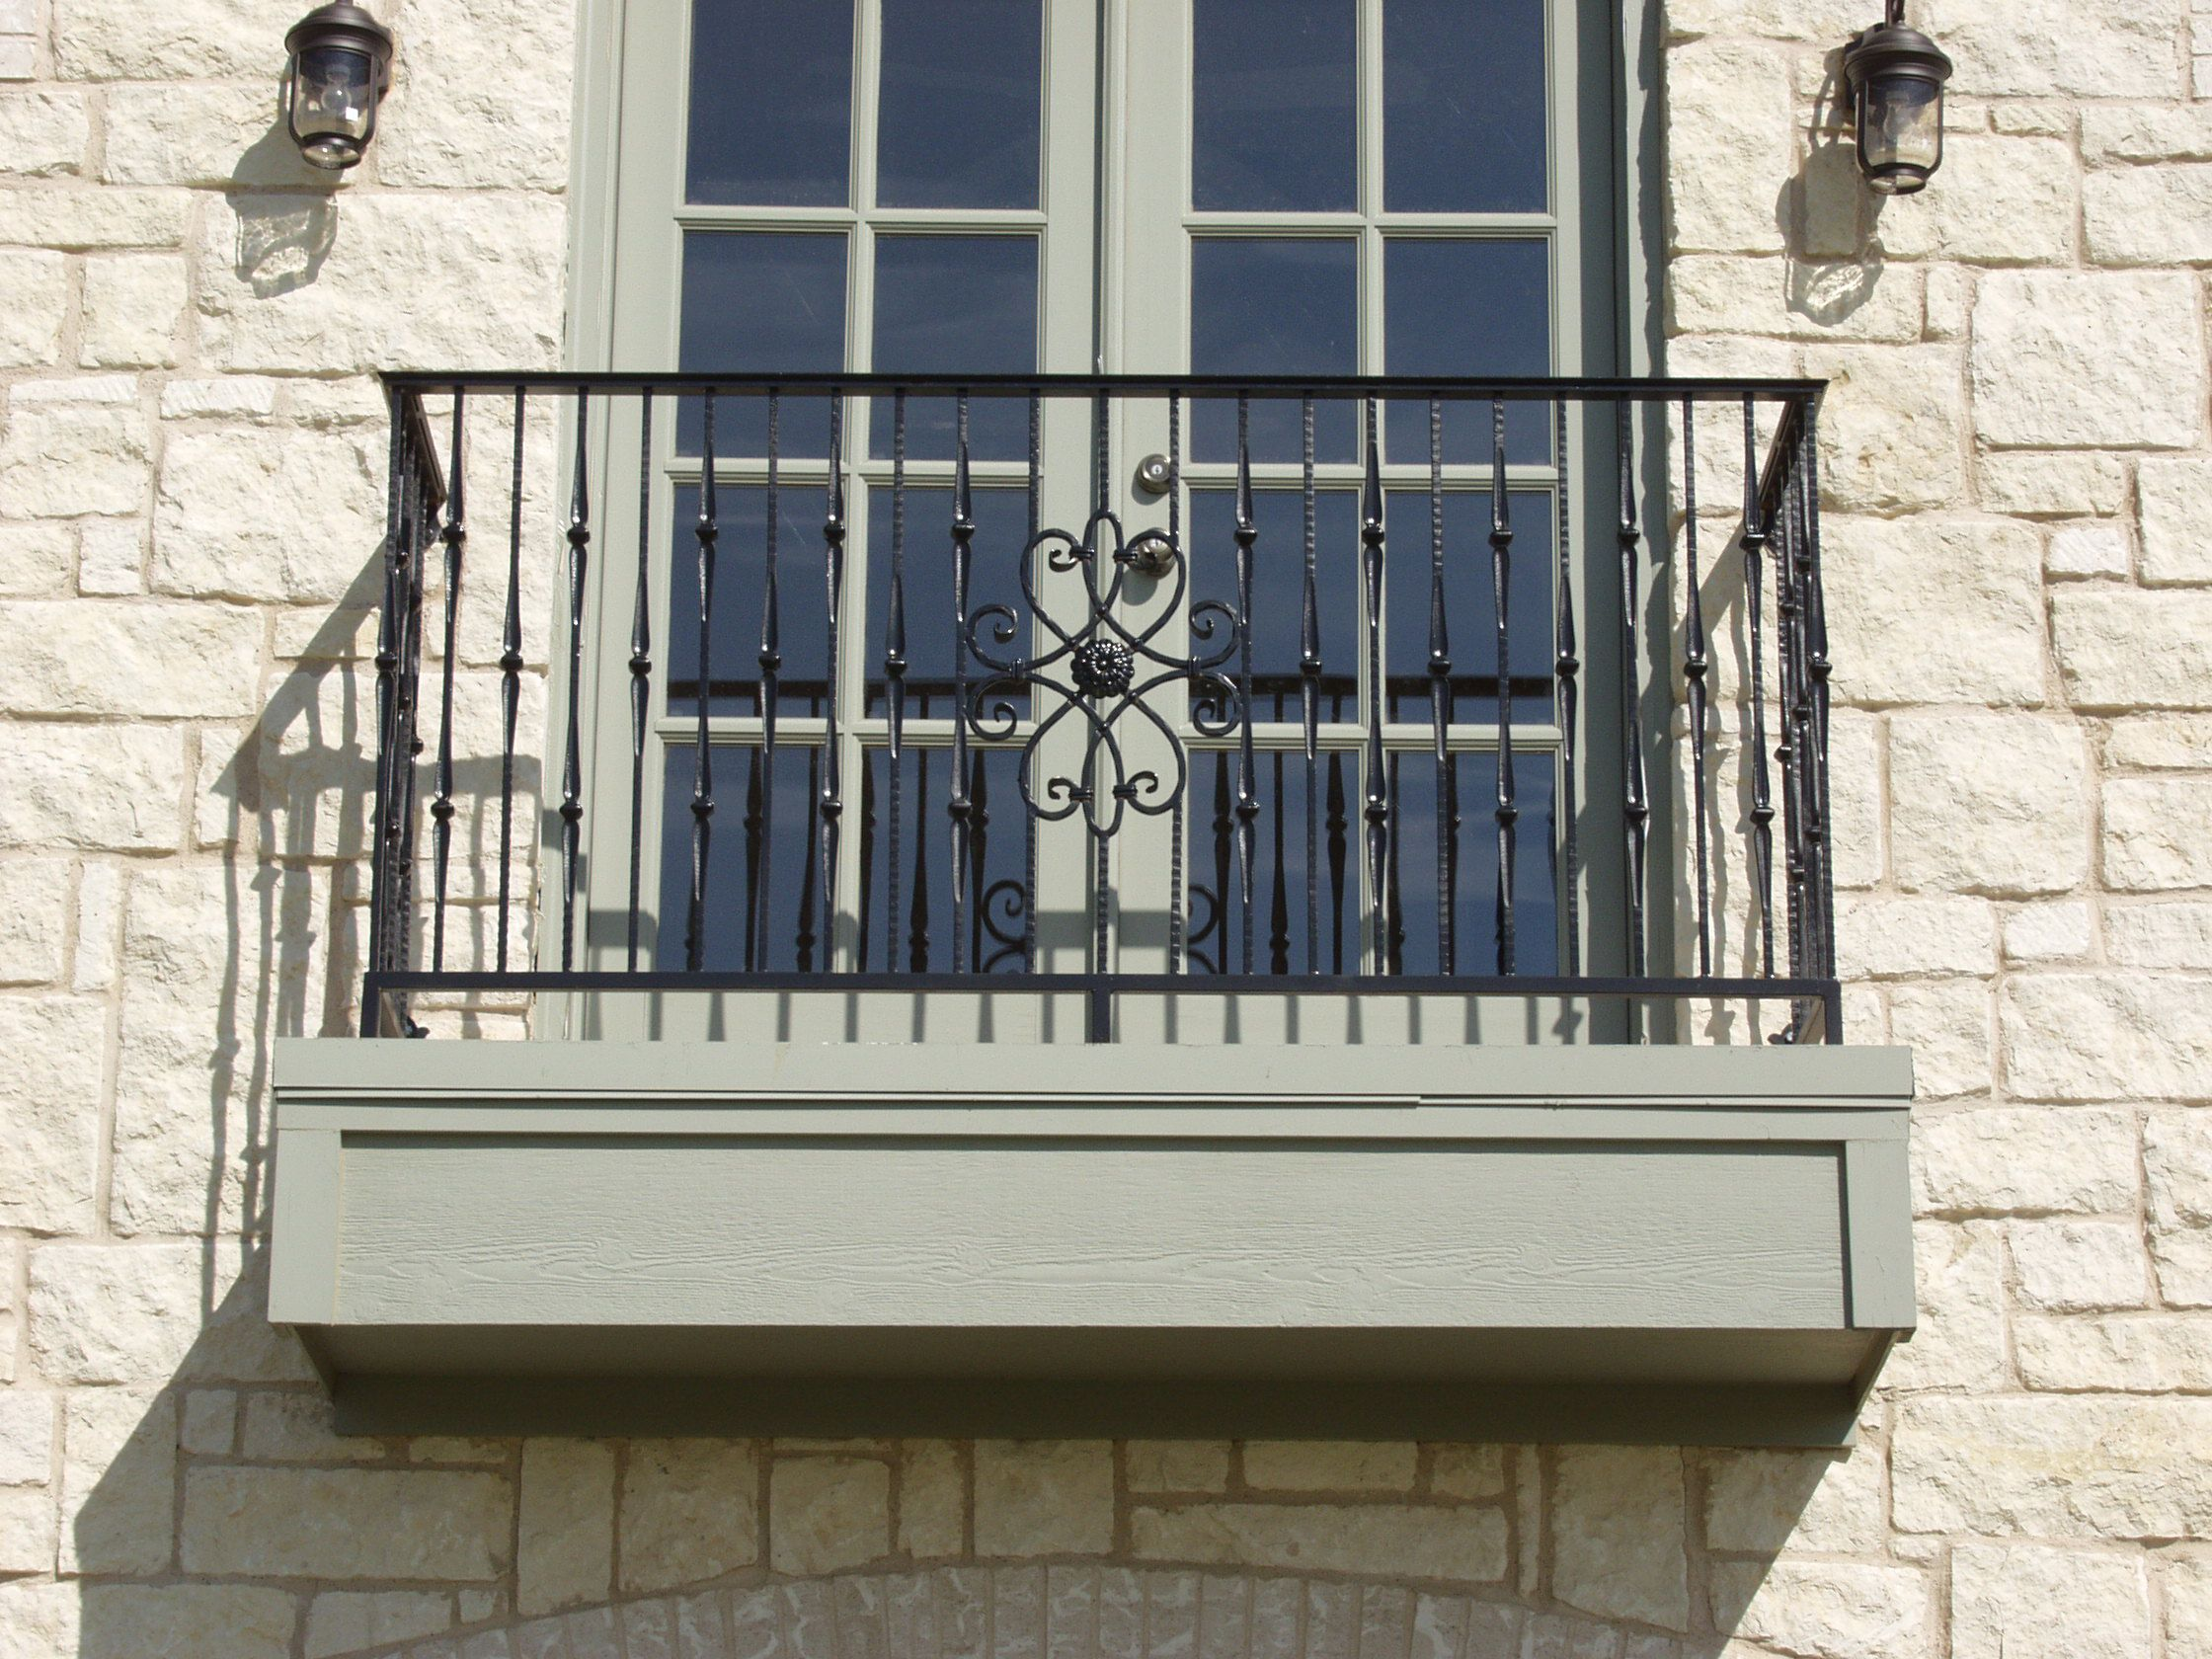 Balkon Design Glass Juliet Balconies Glass Balustrades And Curved Patio